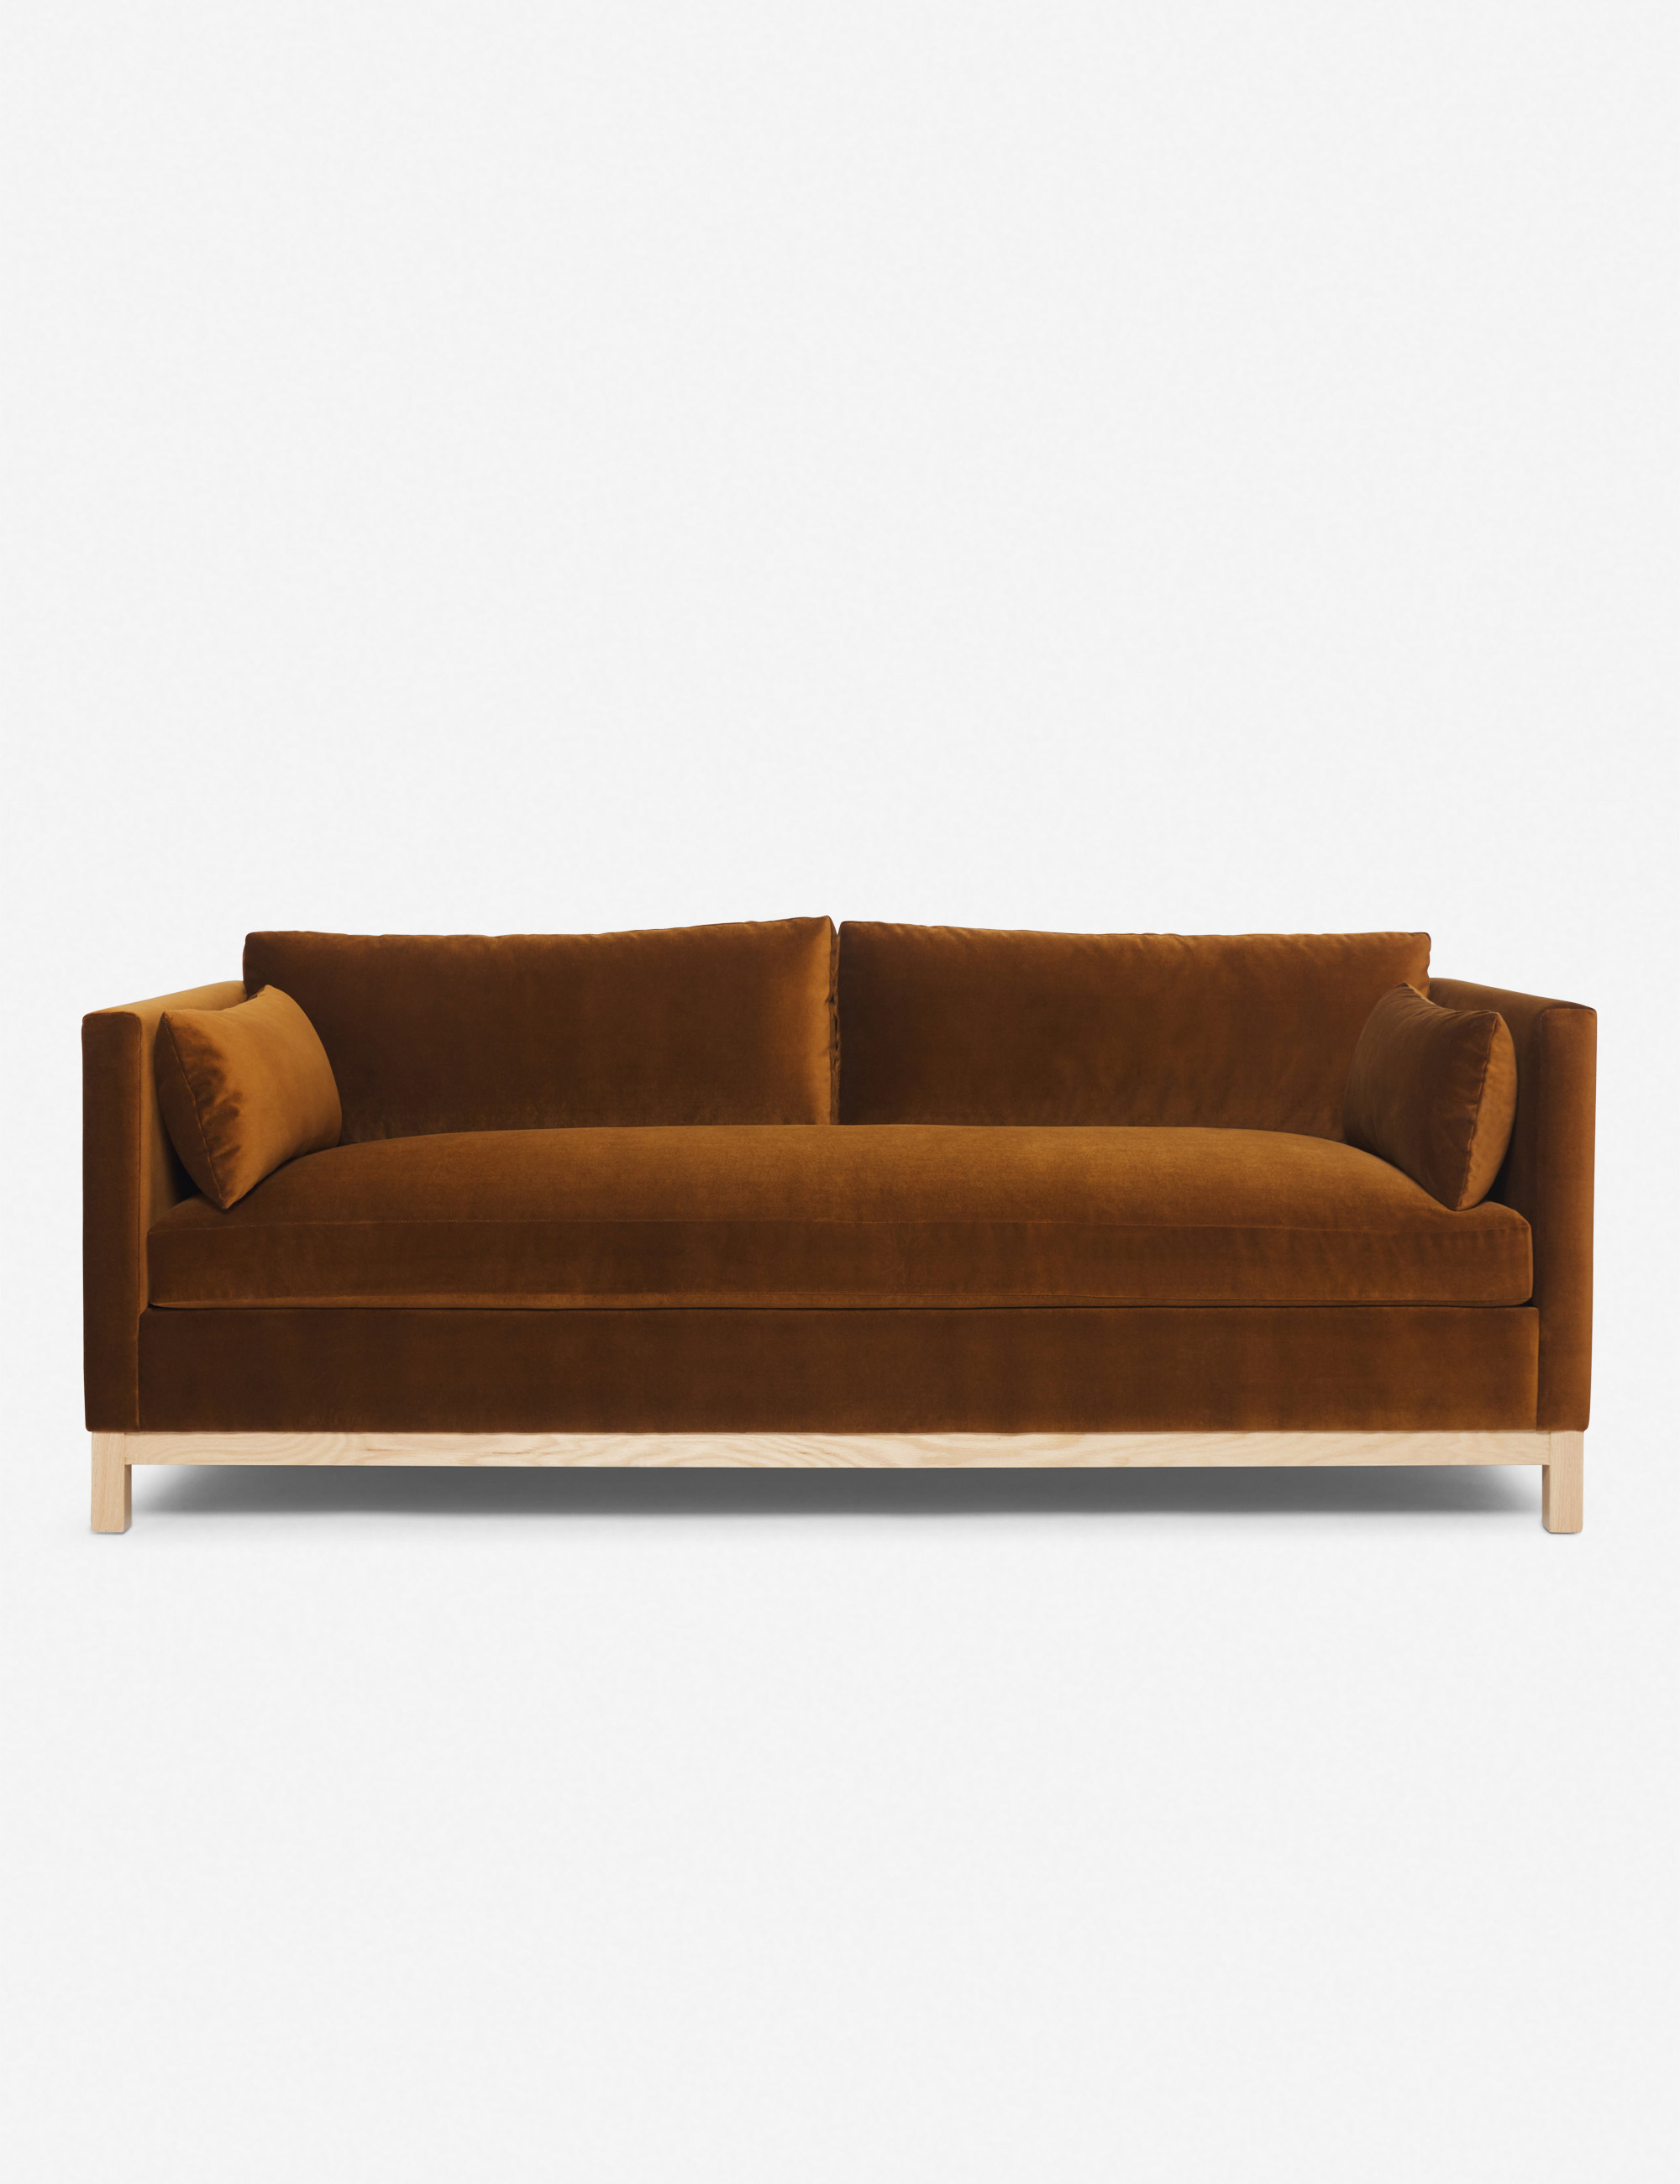 GINNY_MACDONALD_Hollingworth Sofa-Velvet-Cognac-4